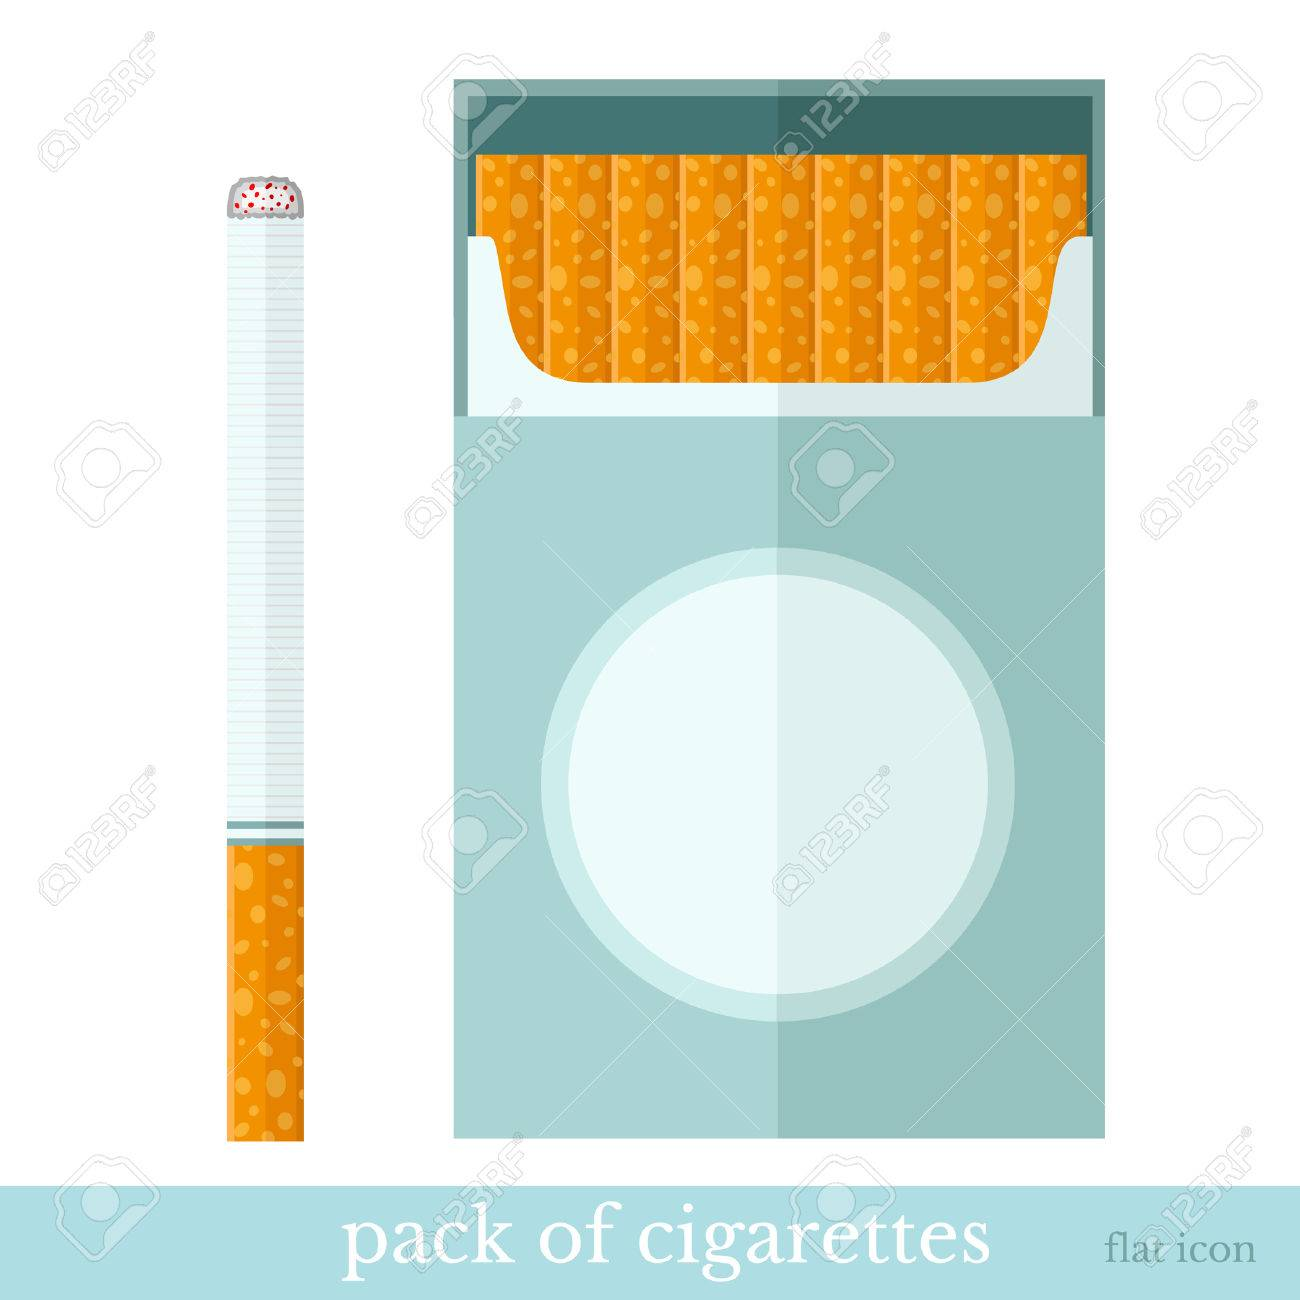 Buy cigarettes Silk Cut Pennsylvania duty free